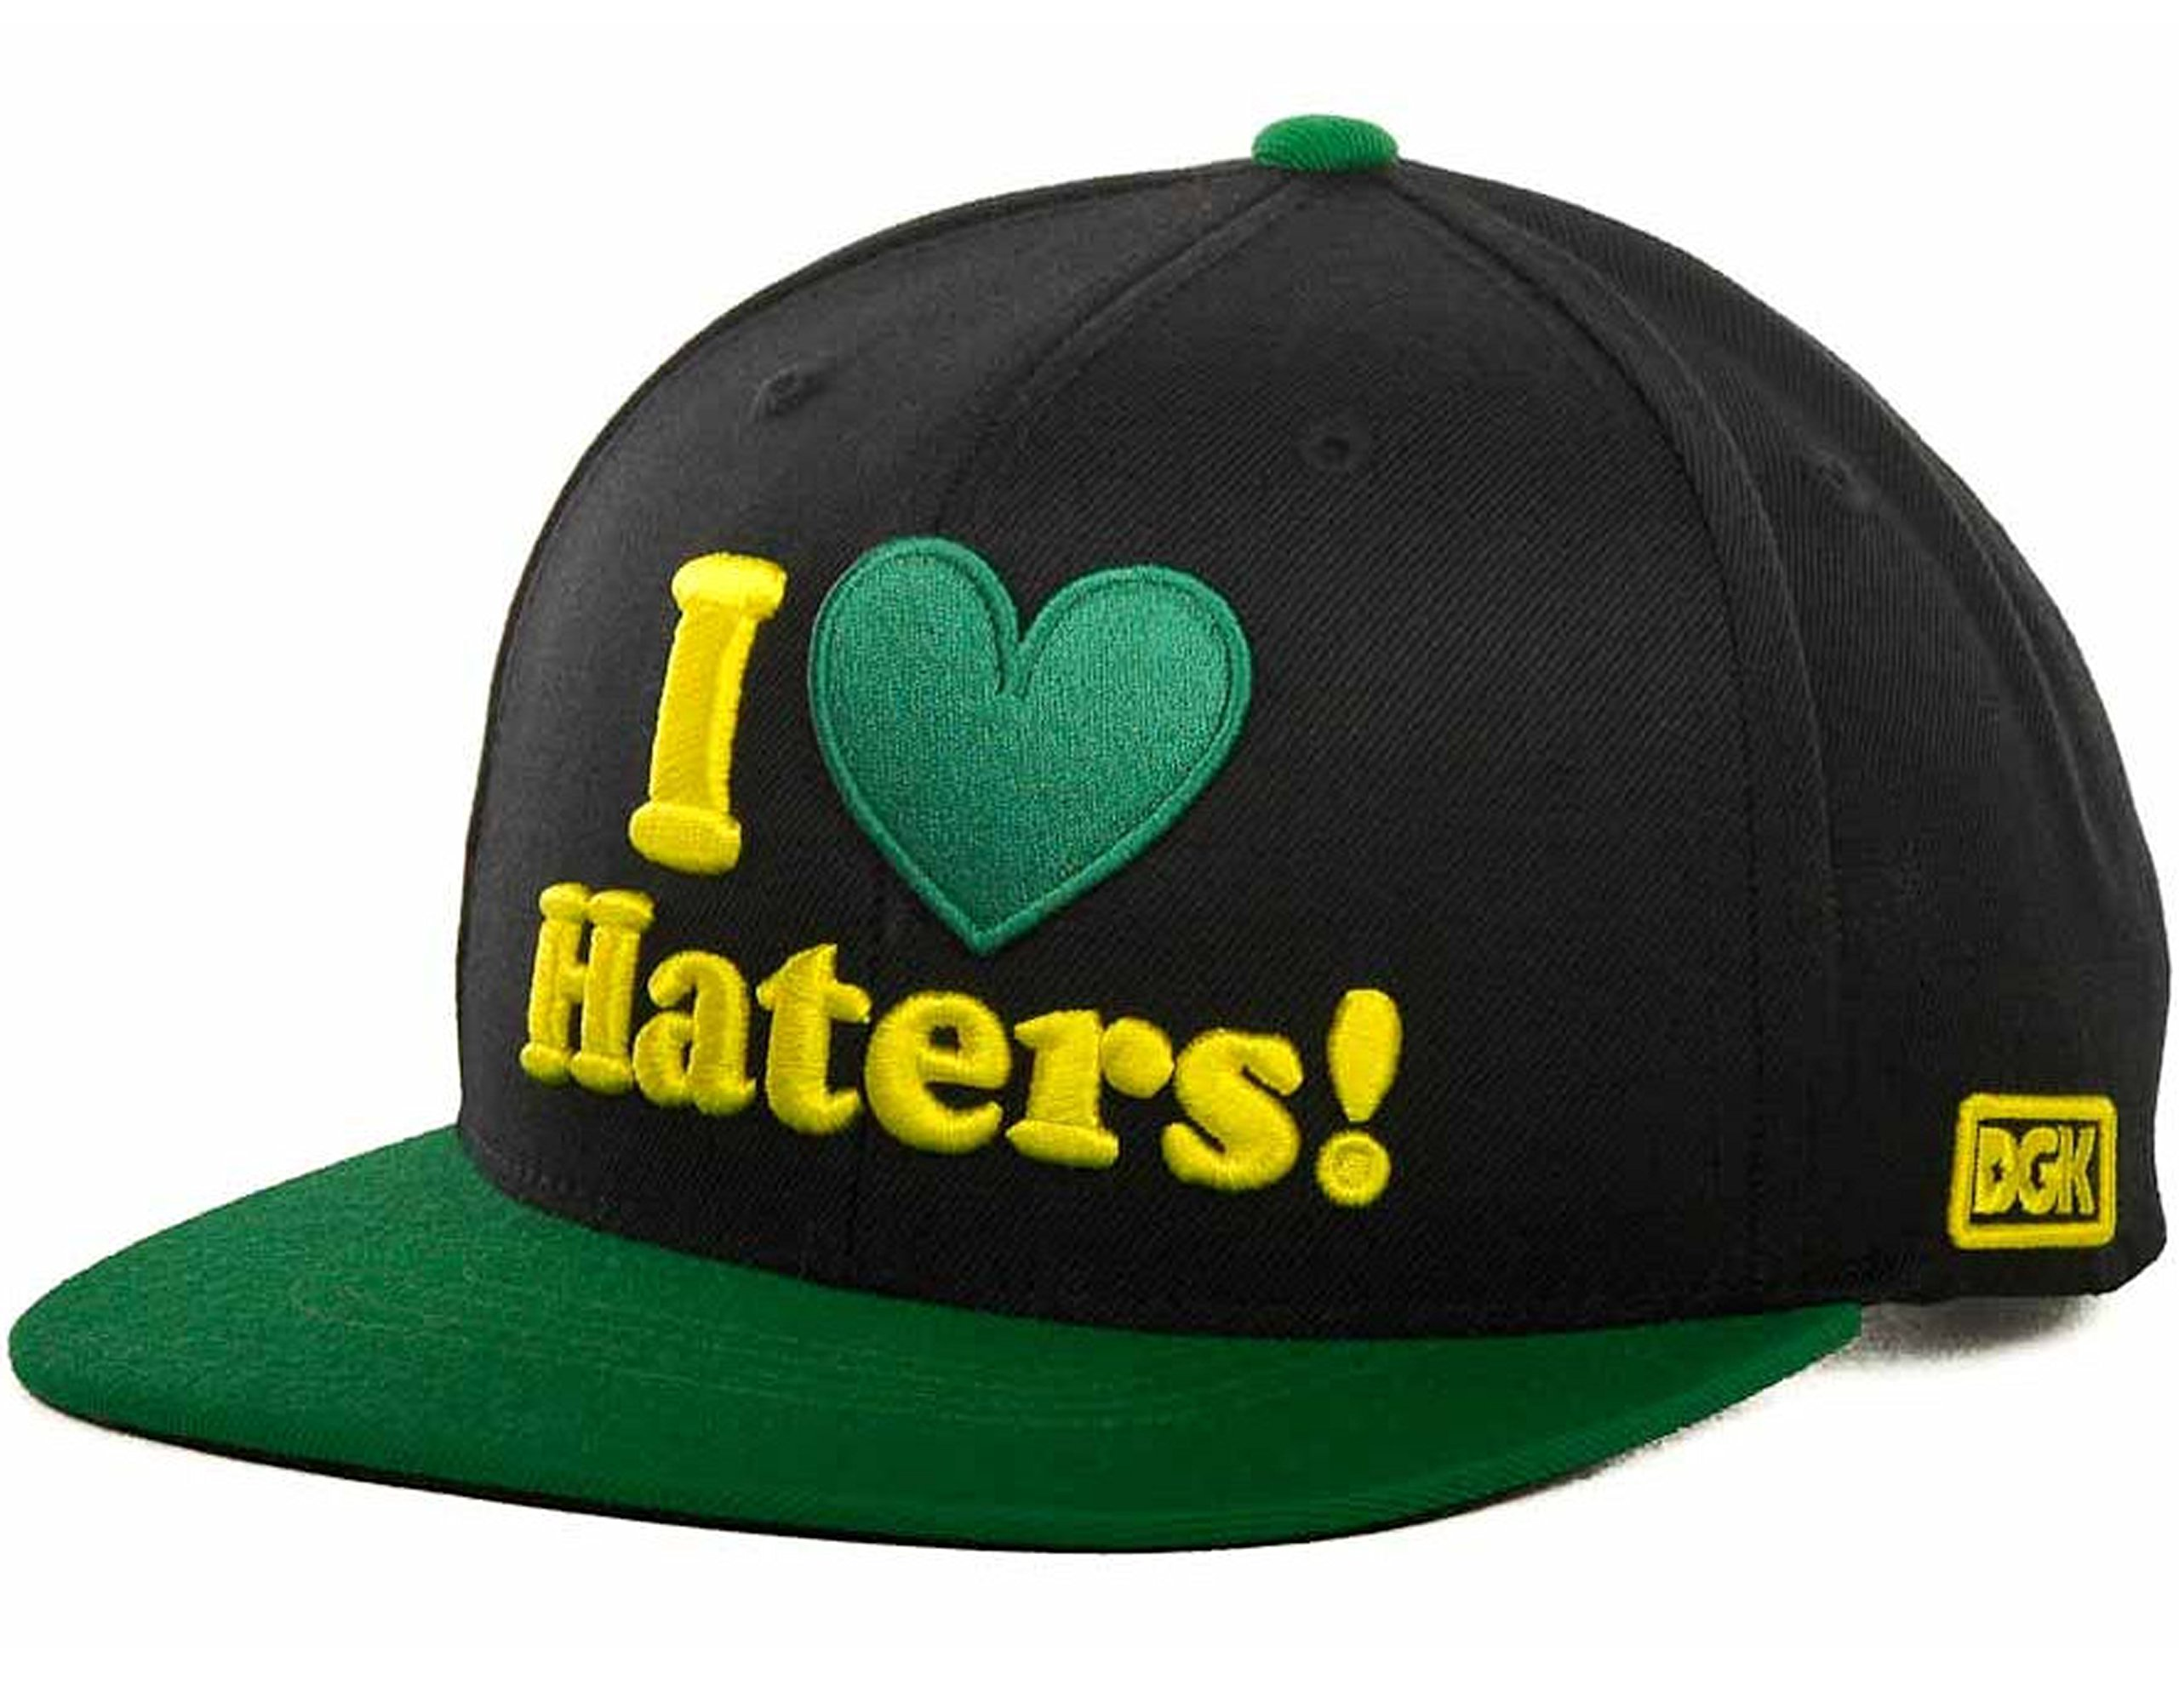 DGK I Heart (Love) Haters Motivation Snapback Cap Hat (One Size, Black/Green/Yellow)